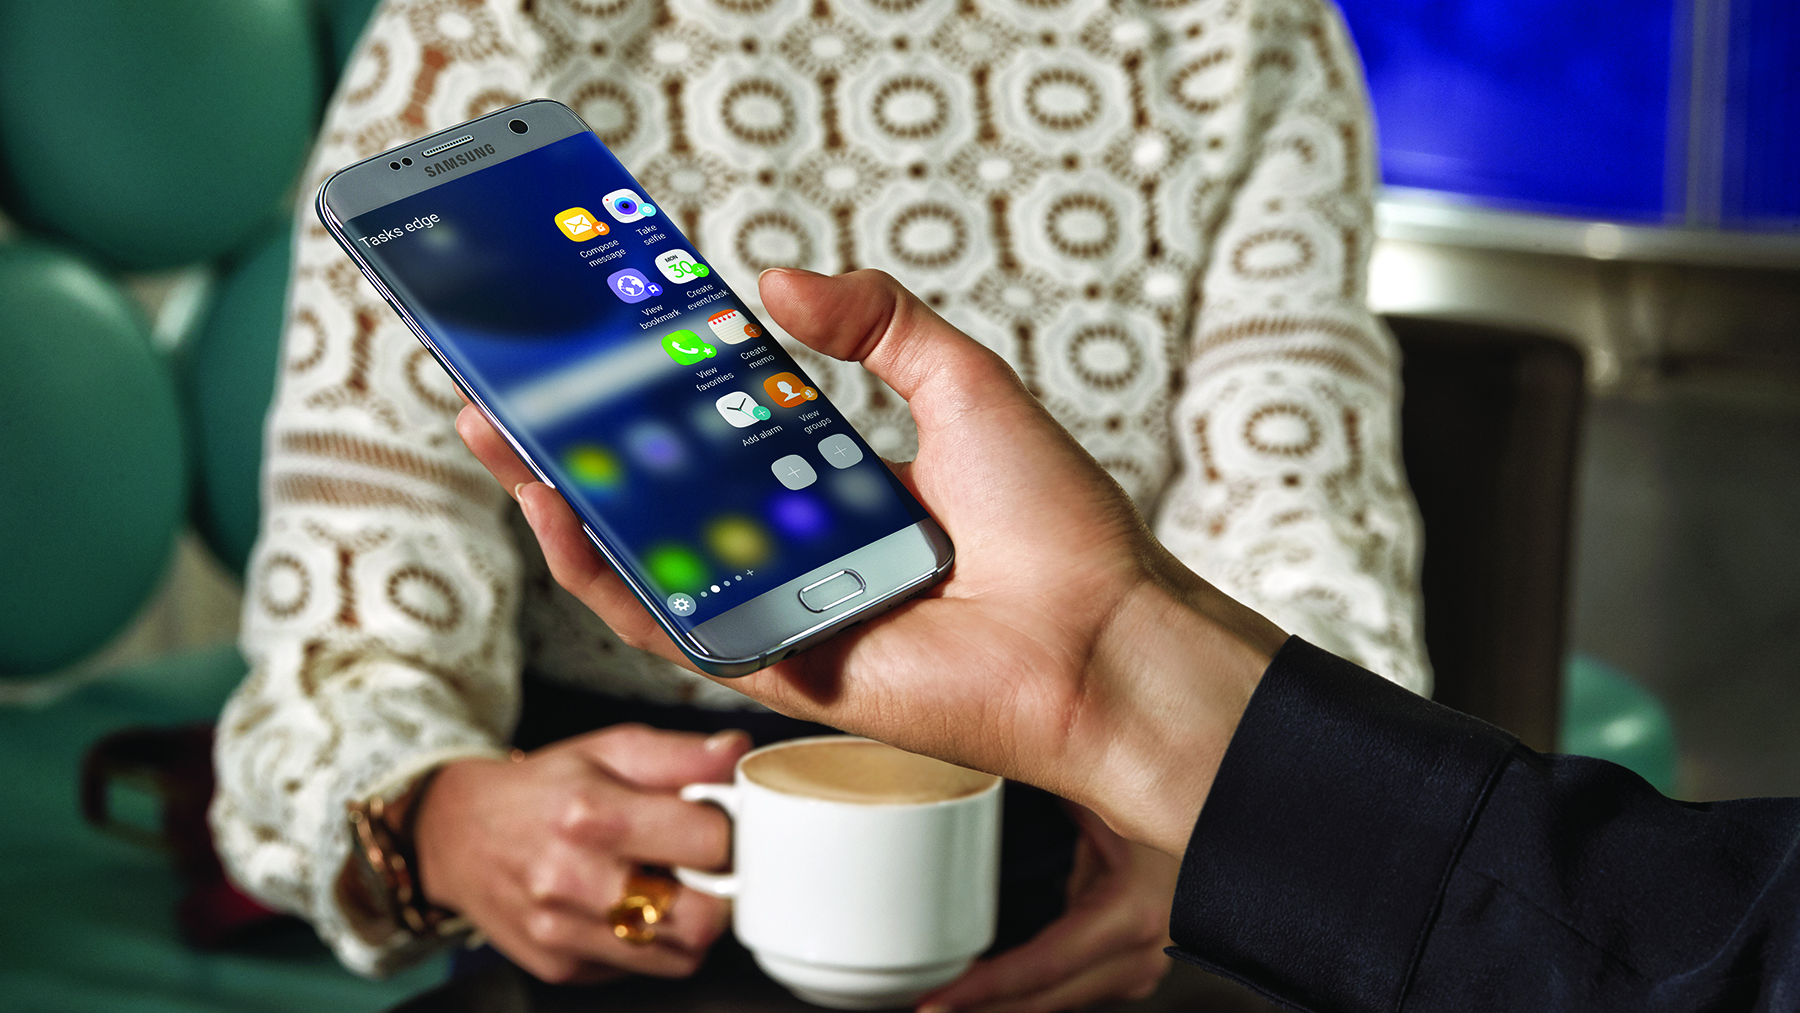 The best smartphone tech coming your way in 2017